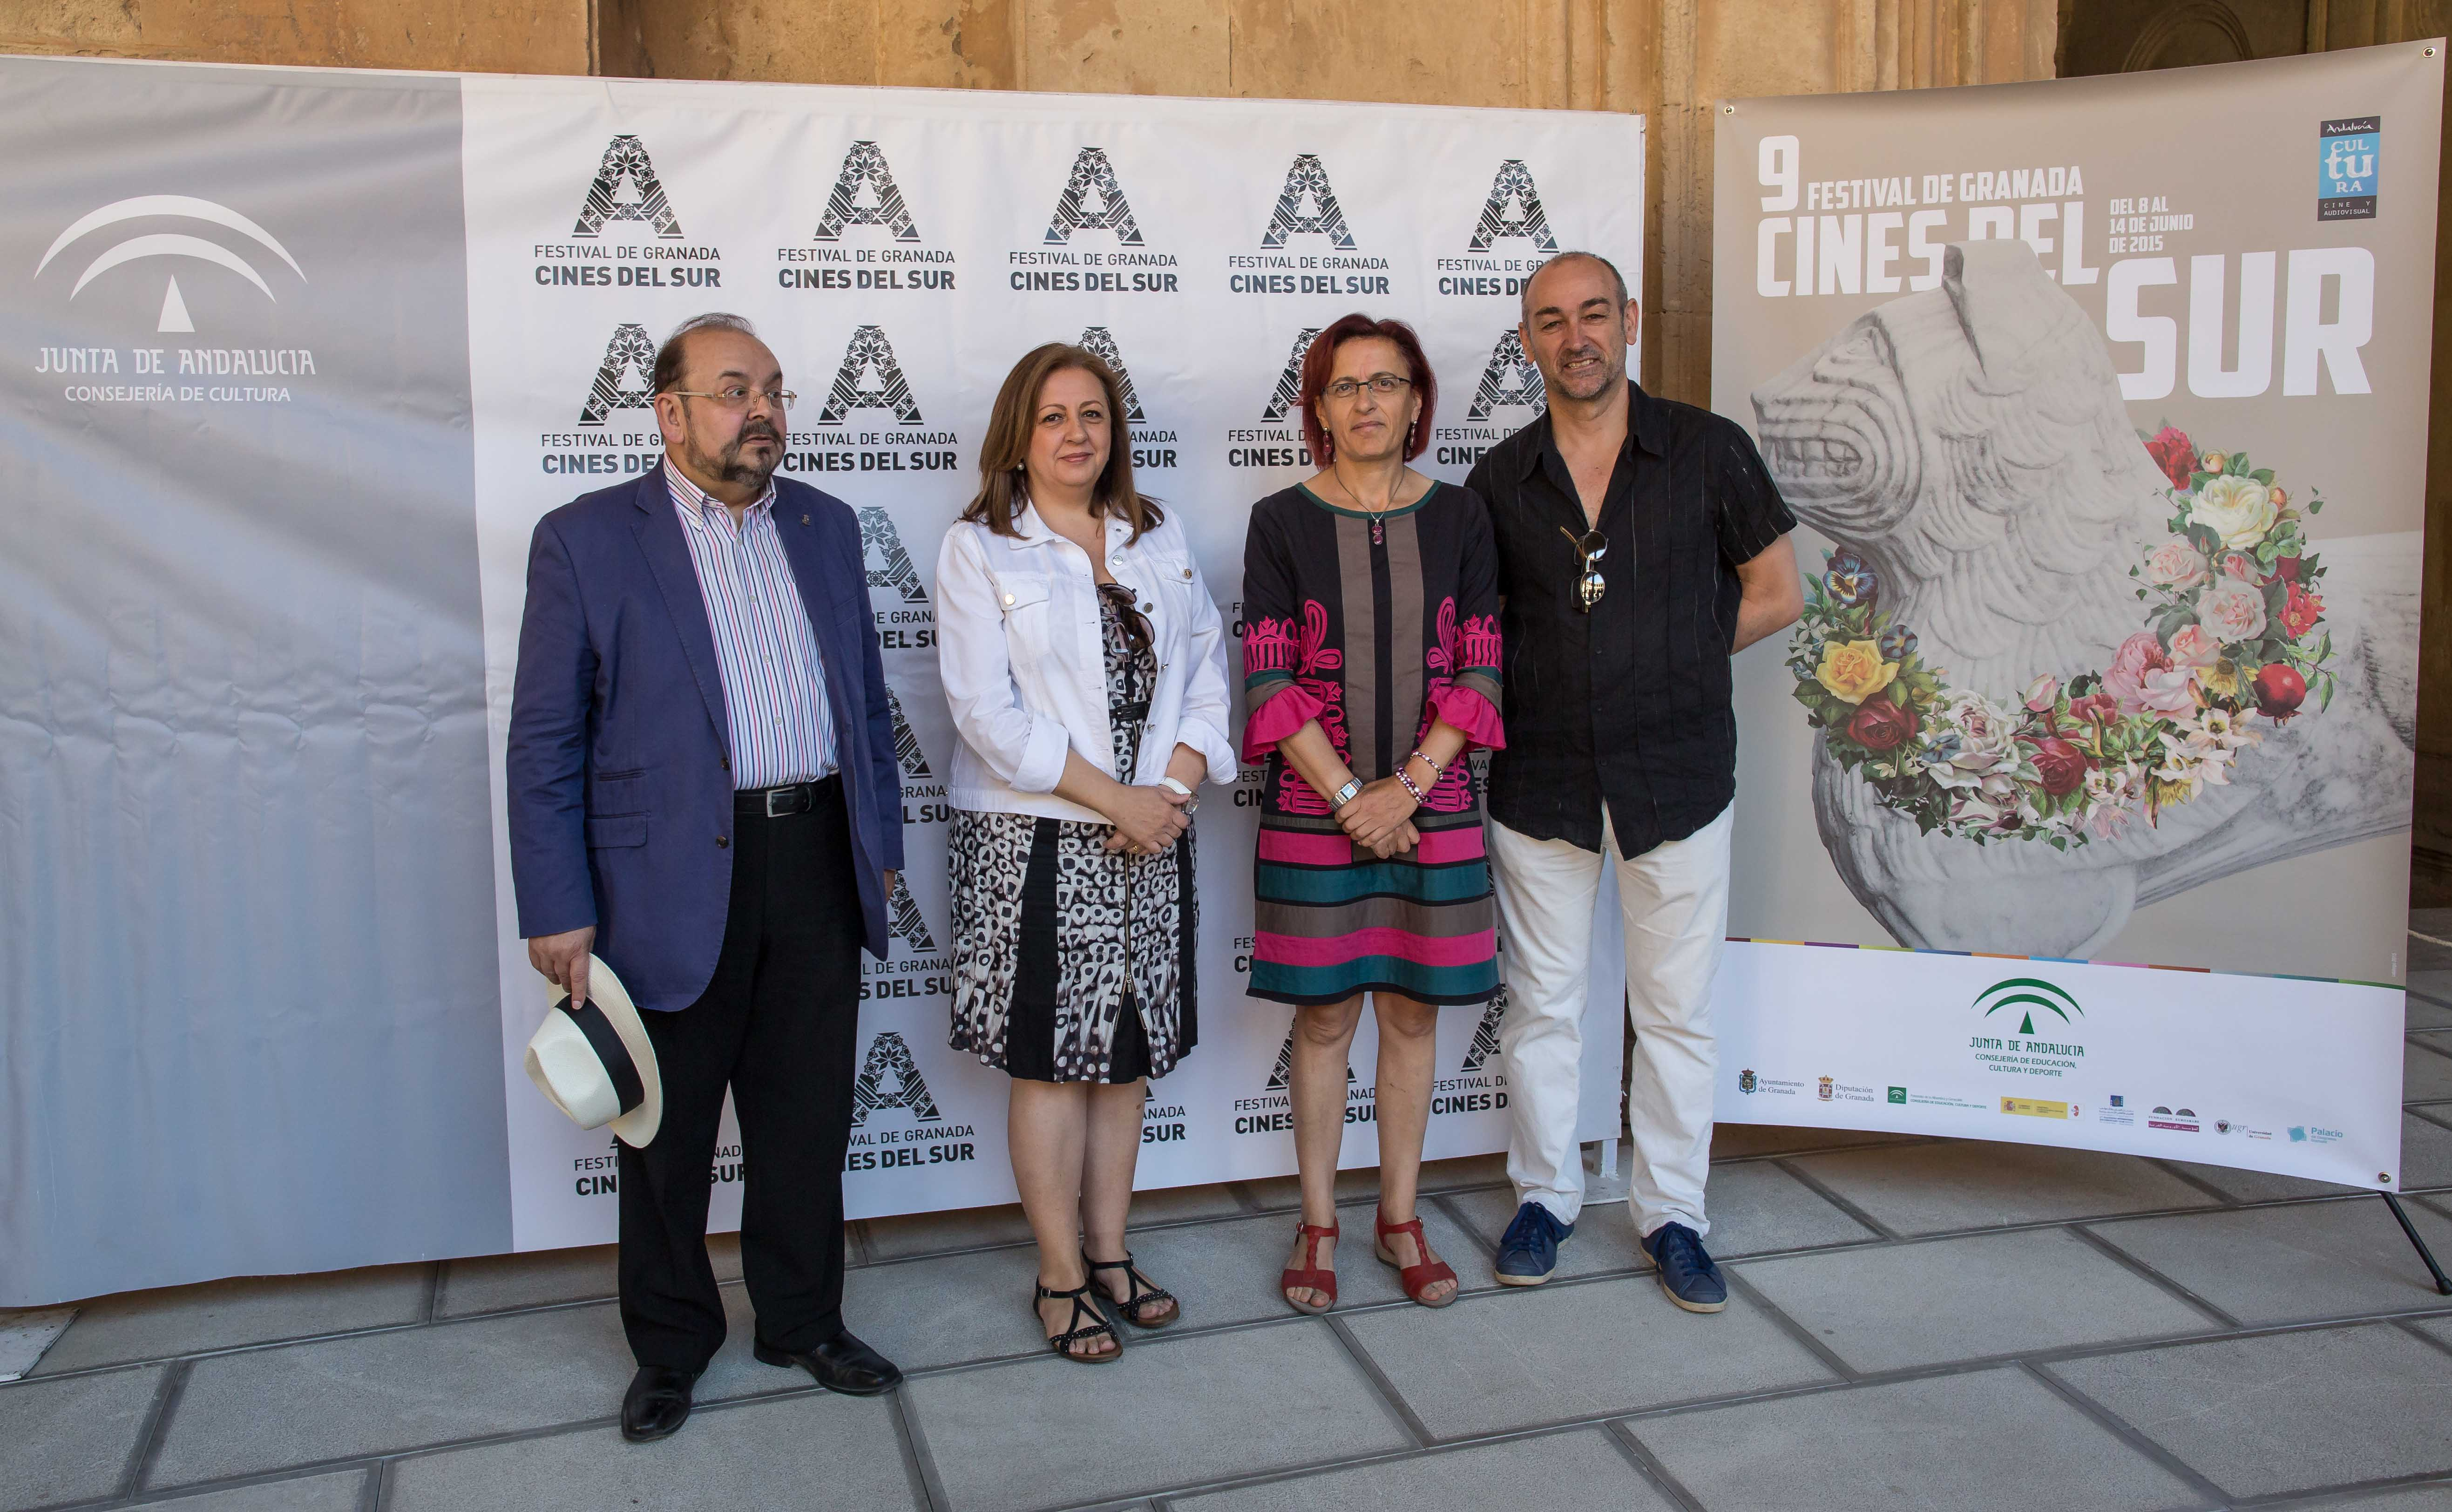 The Cines del Sur Film Festival will be showing around thirty films of which ten will be competing in the Official Section from 8th to 13th June